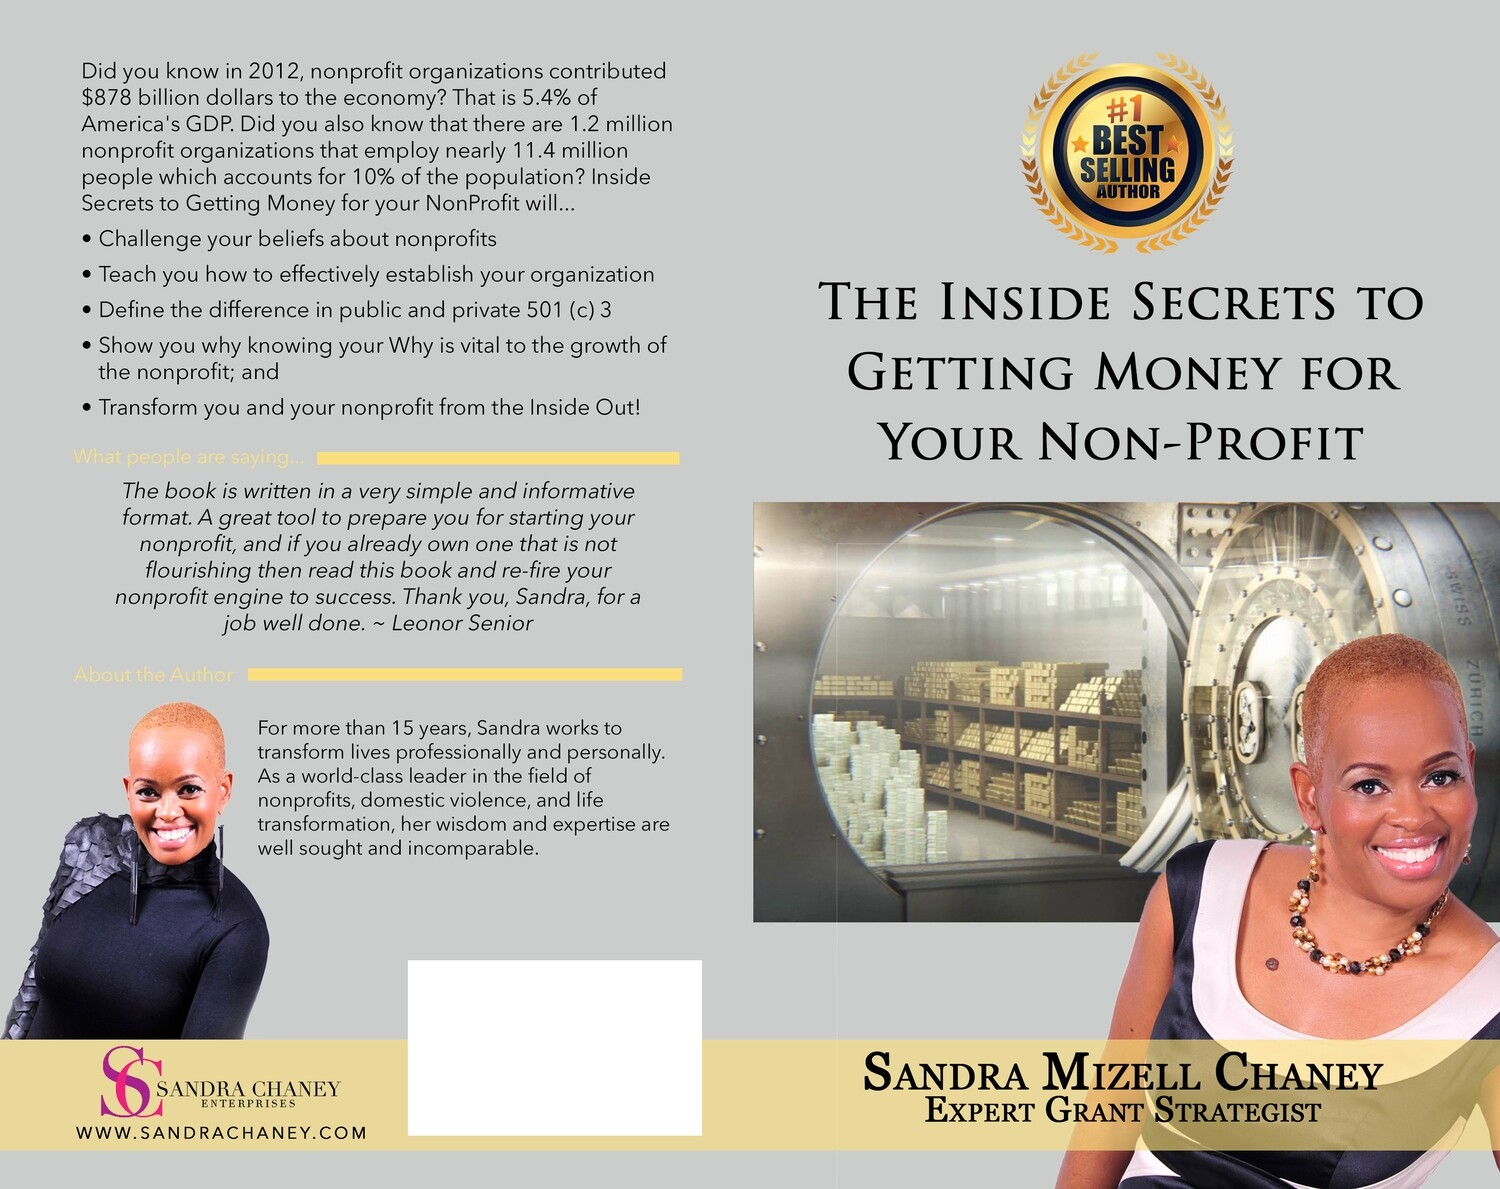 The Inside Secrets To Getting Money for Your Nonprofit